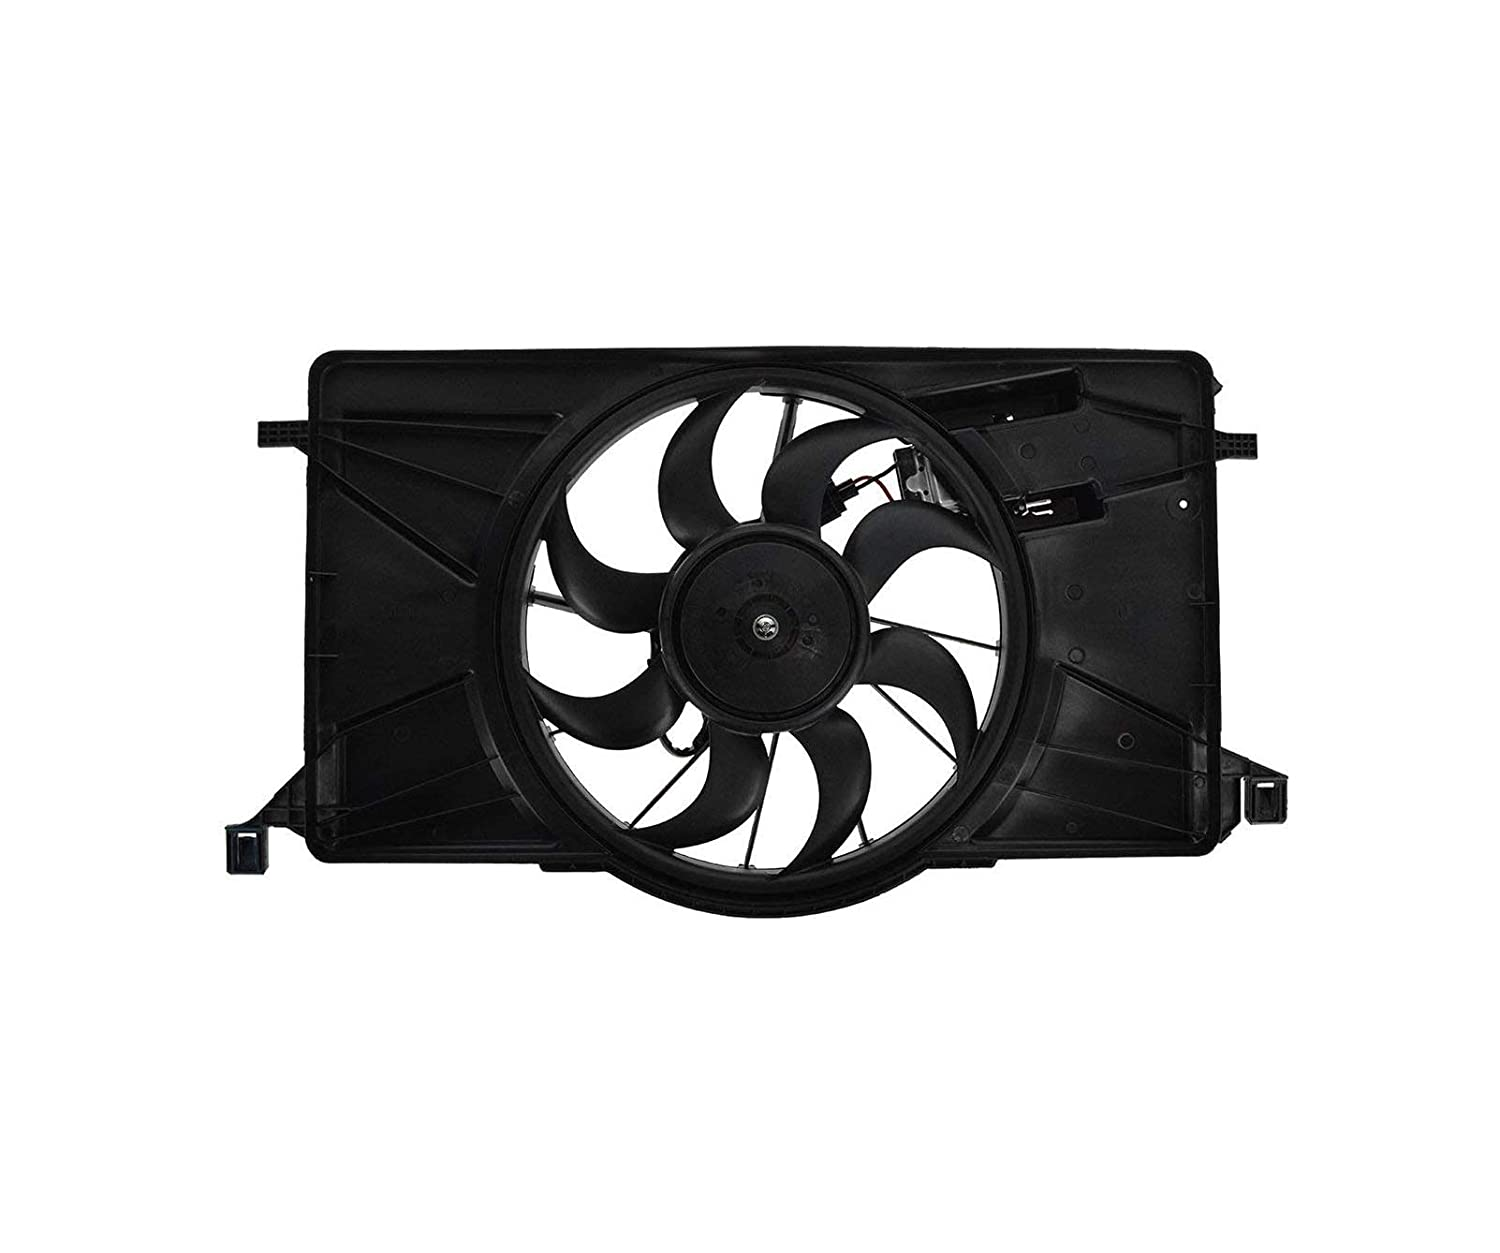 Amazon.com: Engine Cooling Fan Assembly - Cooling Direct For/Fit FO3115189 12-16 Ford Focus 2.0L w/o Turbo: Automotive